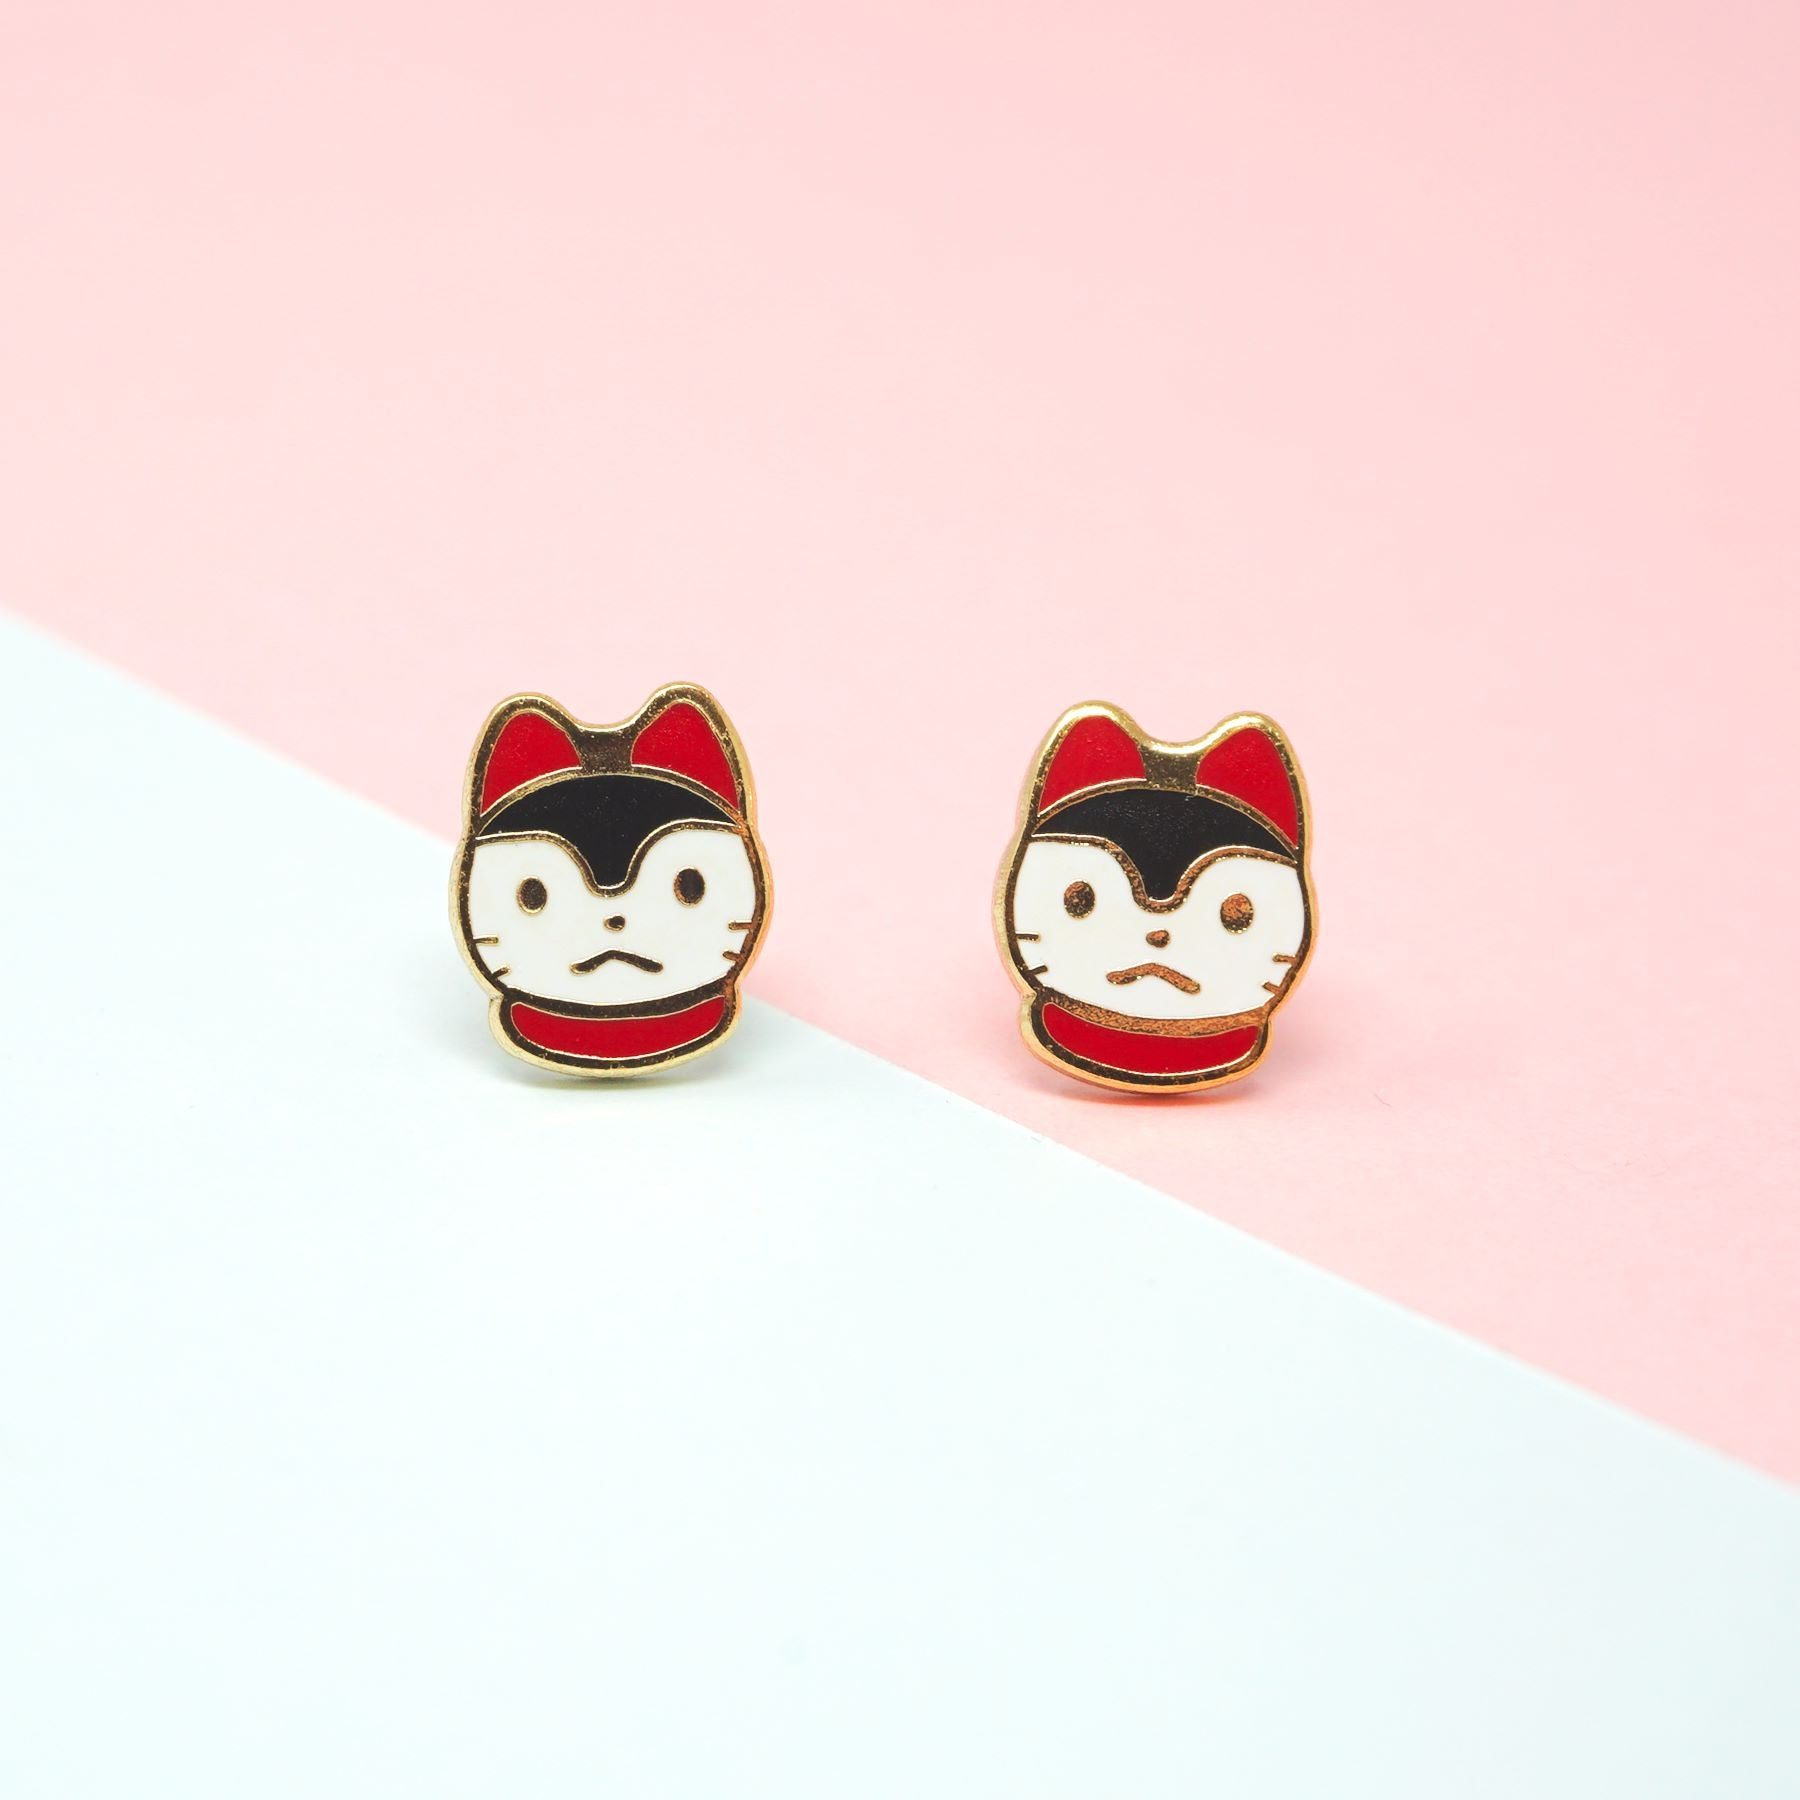 Miss Modi presents Handcrafted Inu Hariko Enamel Stud Earrings